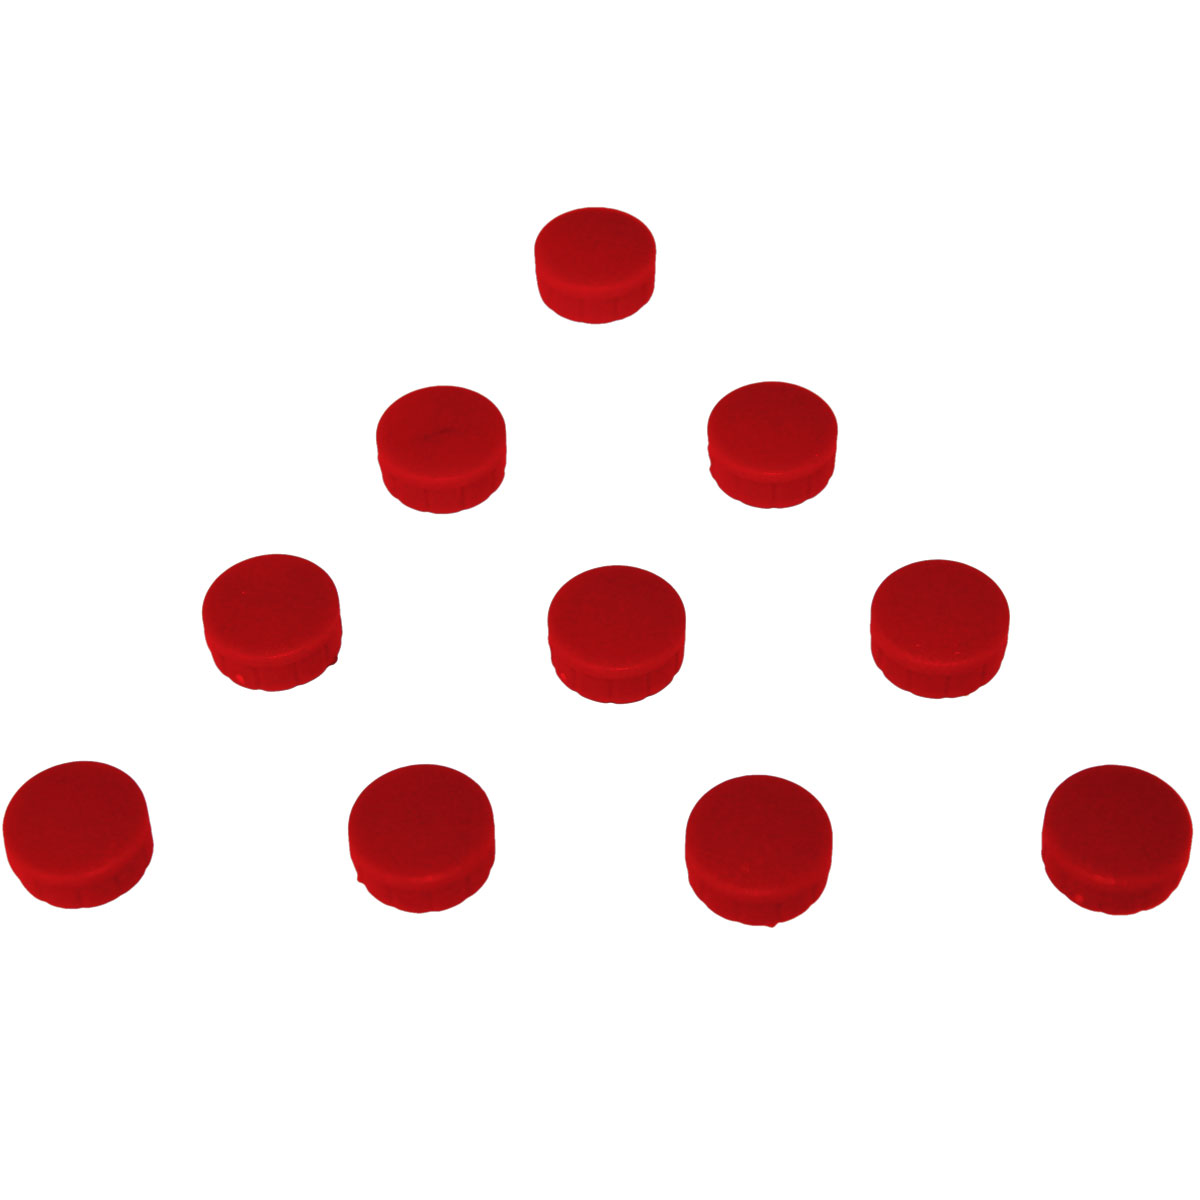 Red circle magnets